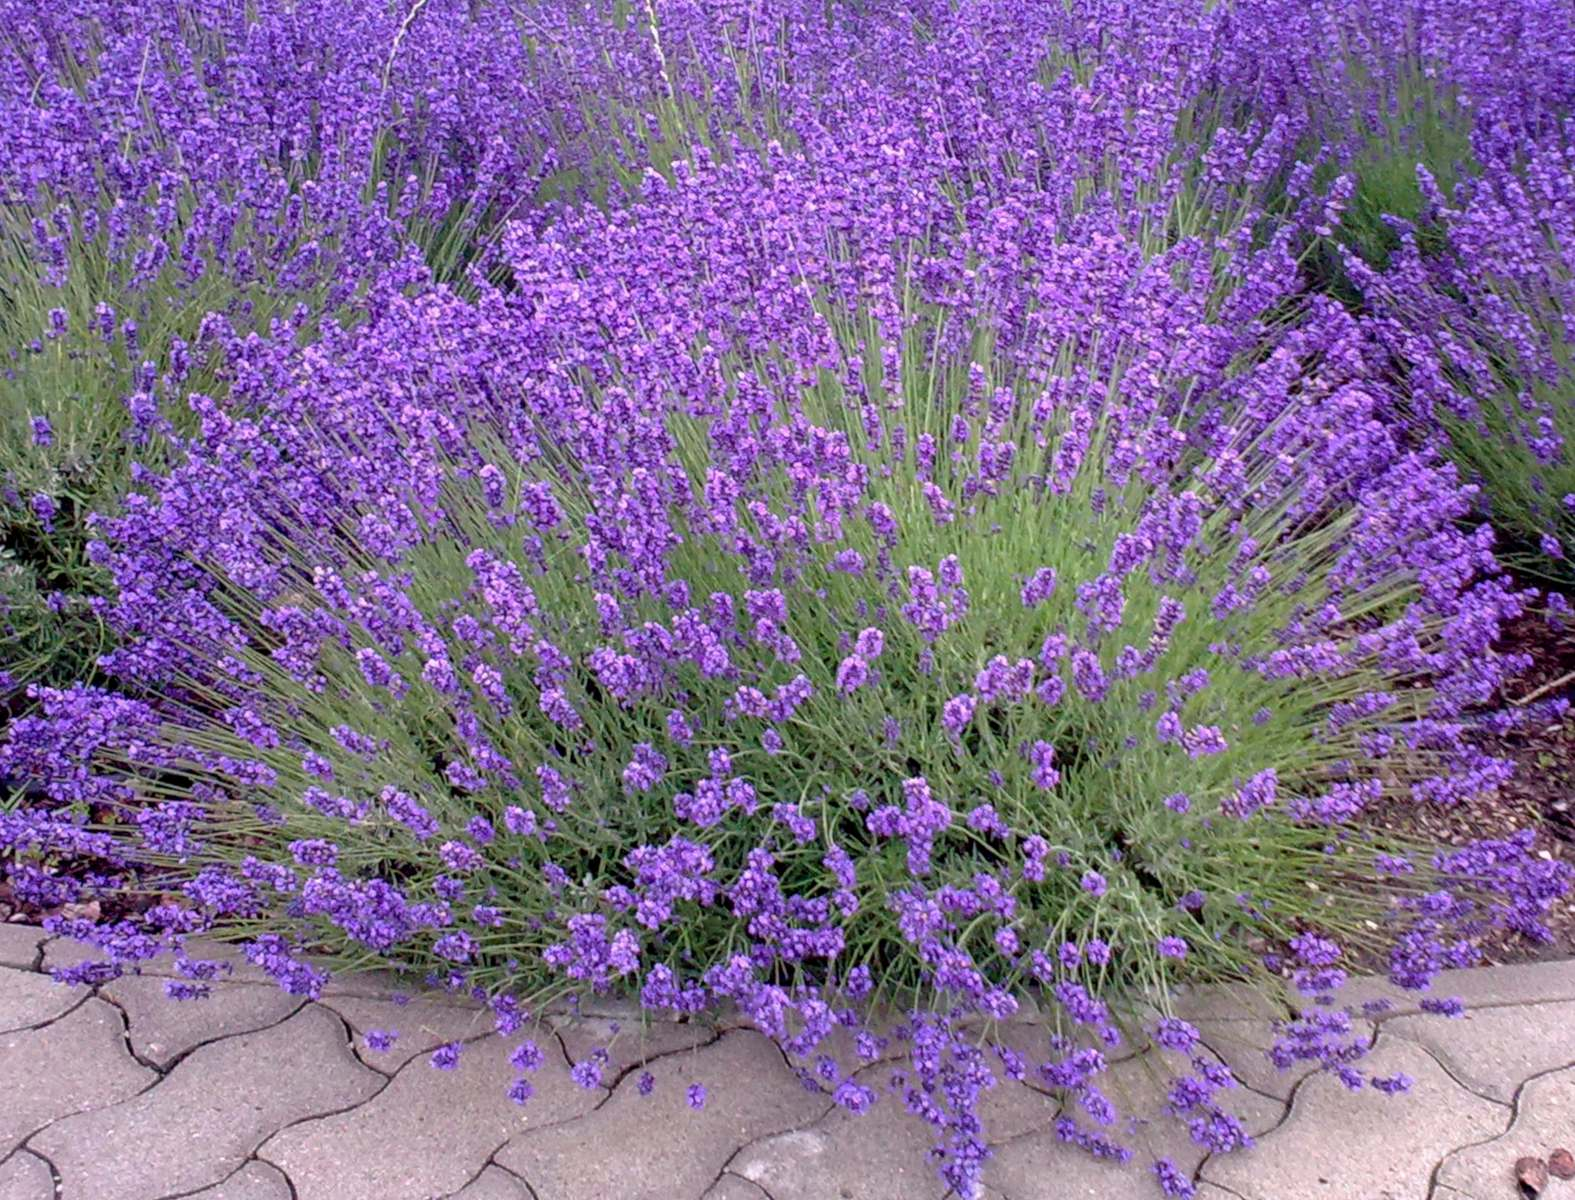 Lavender Planting Care And Trimming This Fragrant Flower Into Mounds